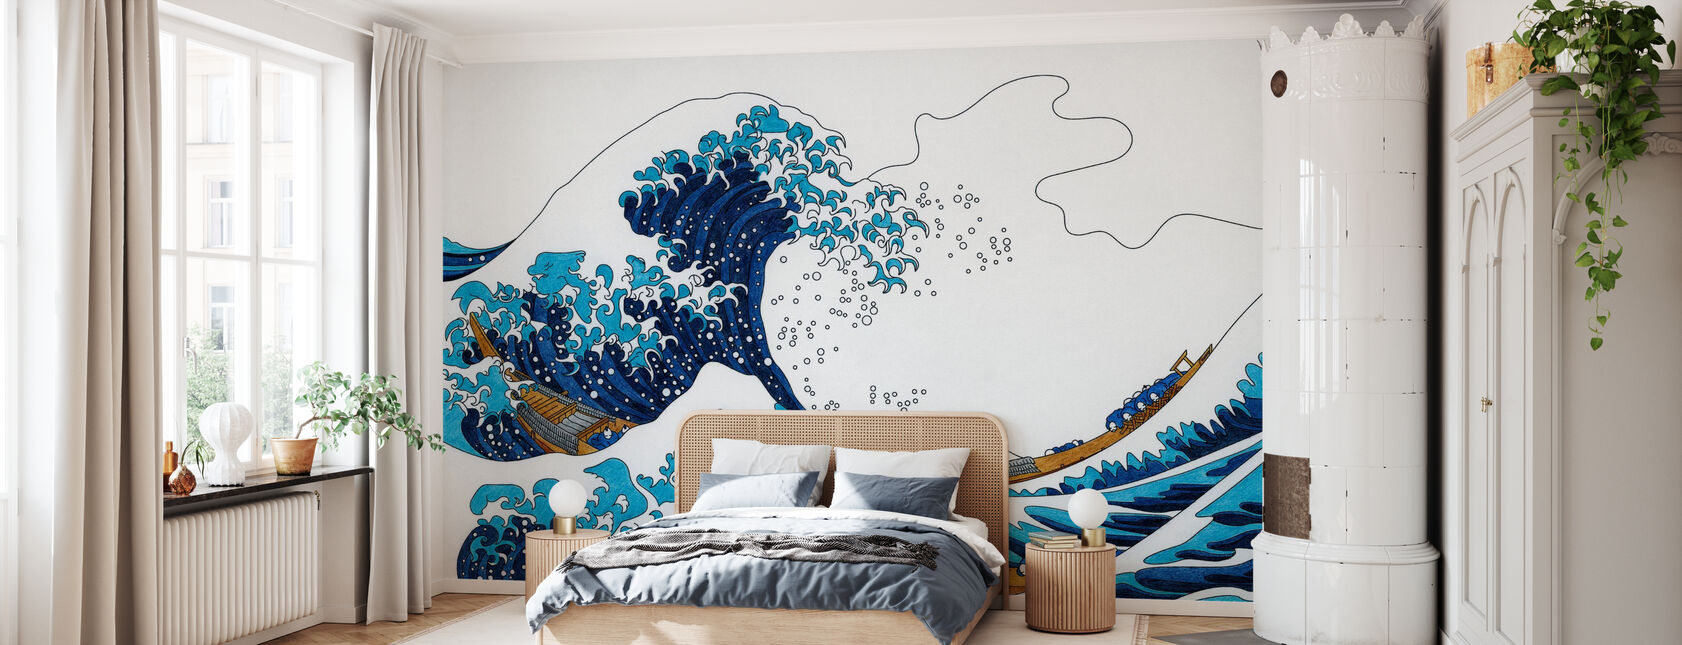 Great Wave of Kanagawa - Wallpaper - Bedroom